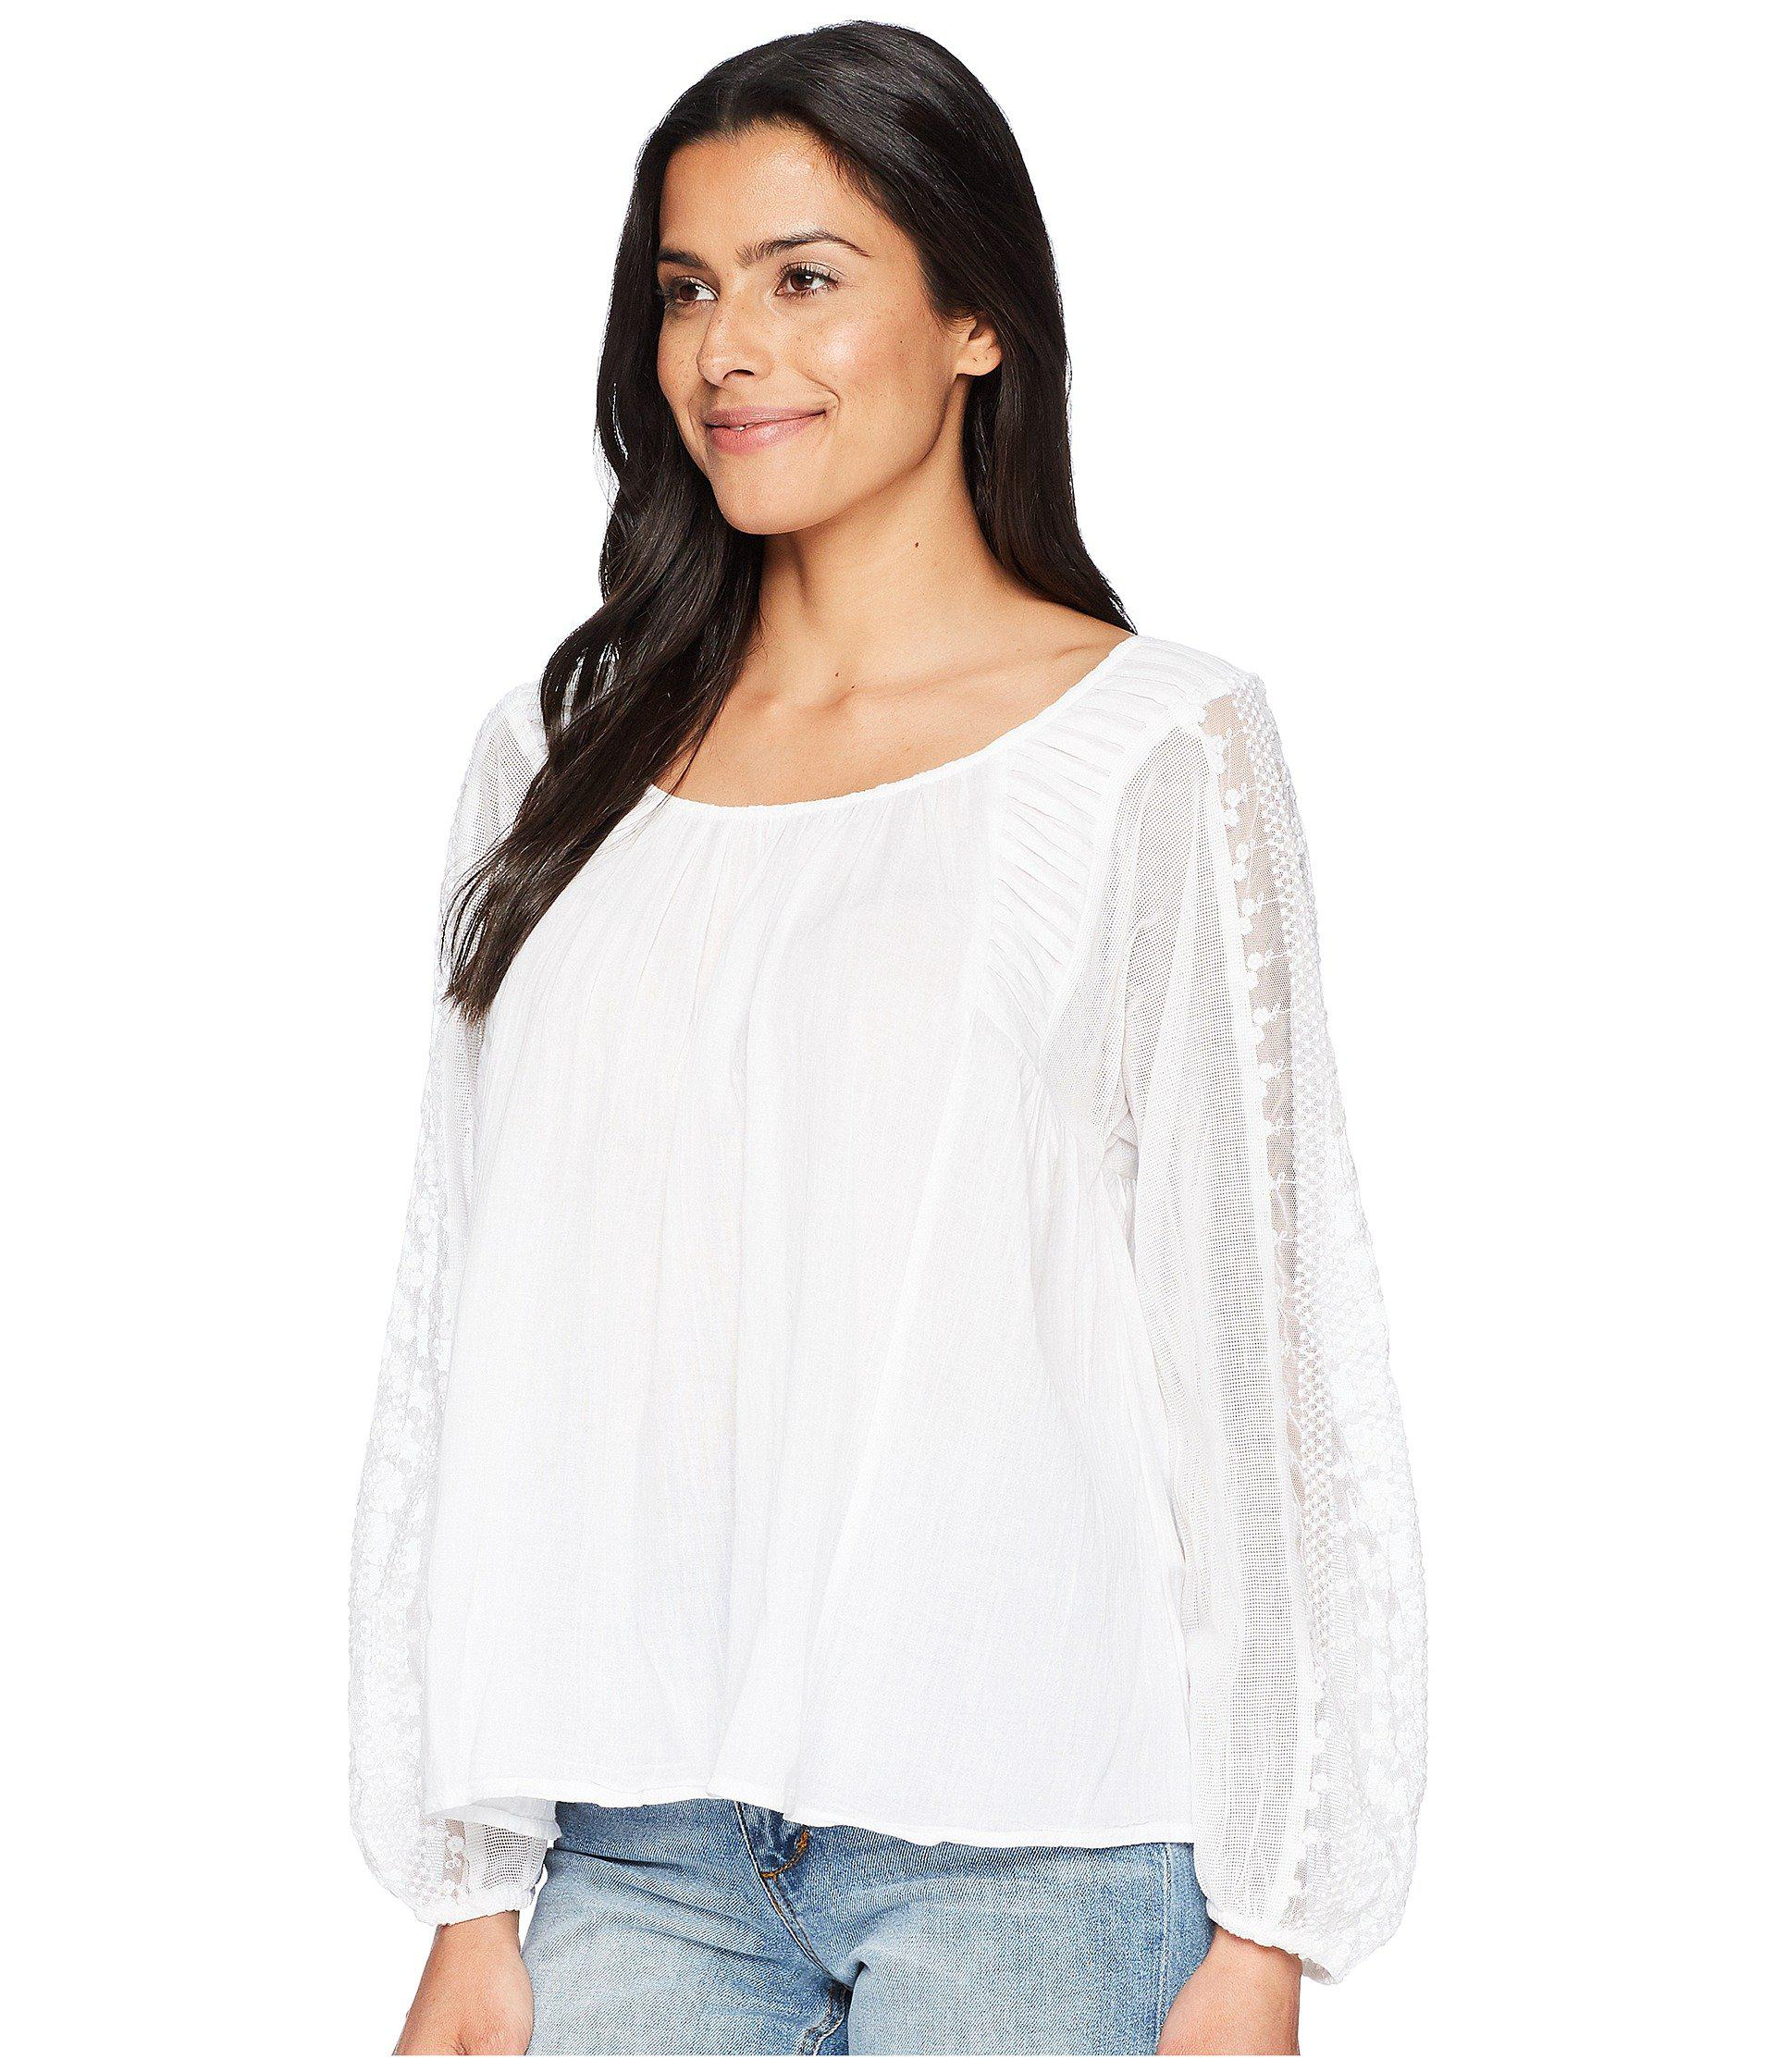 dfbbe87fd76bf Lyst - Lucky Brand Cross-back Peasant Top in White - Save 13%